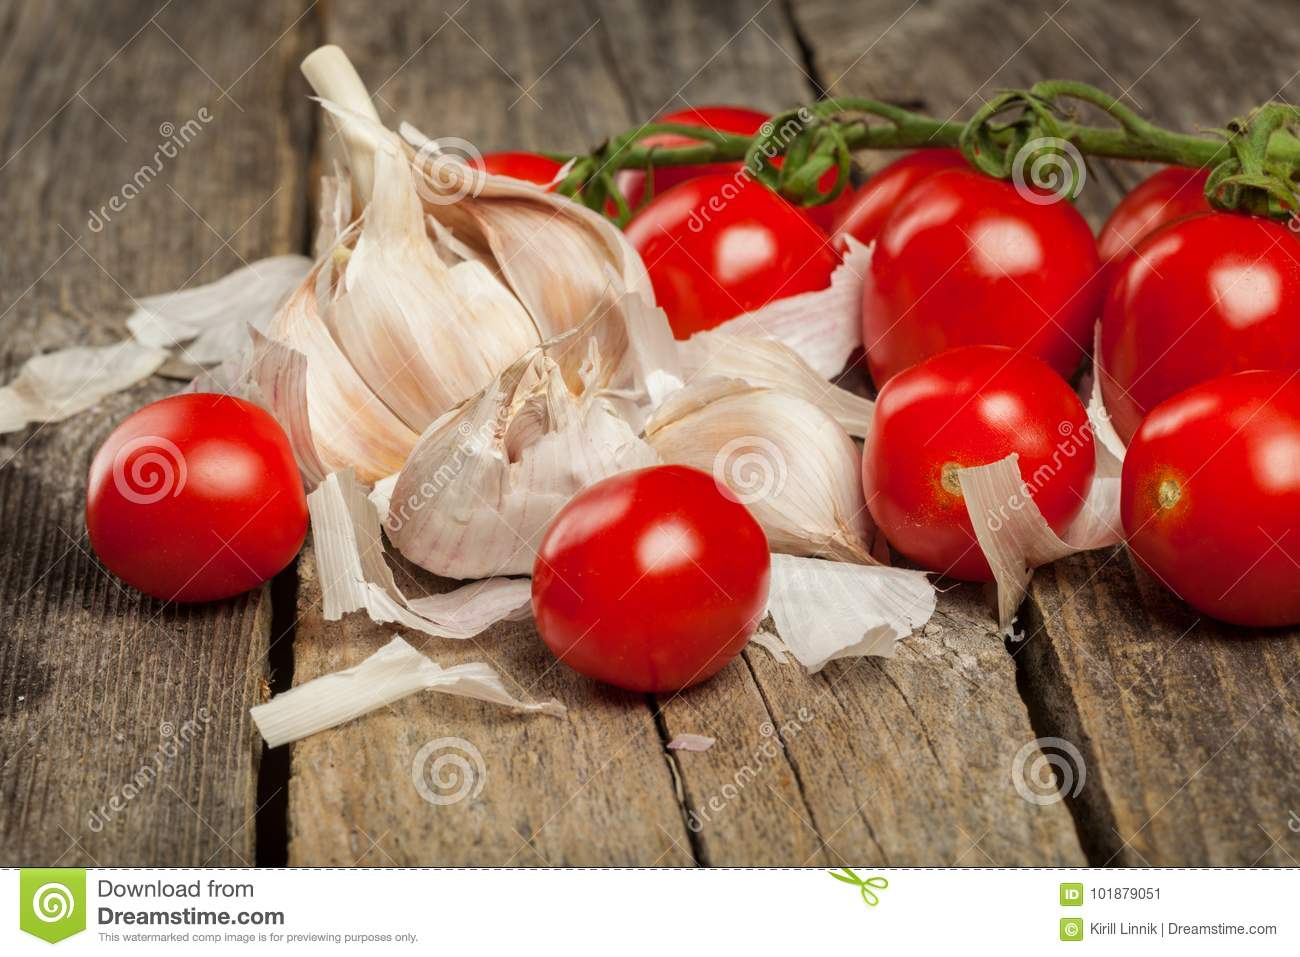 Download Tomatoes and garlic stock image. Image of diet, meal - 101879051